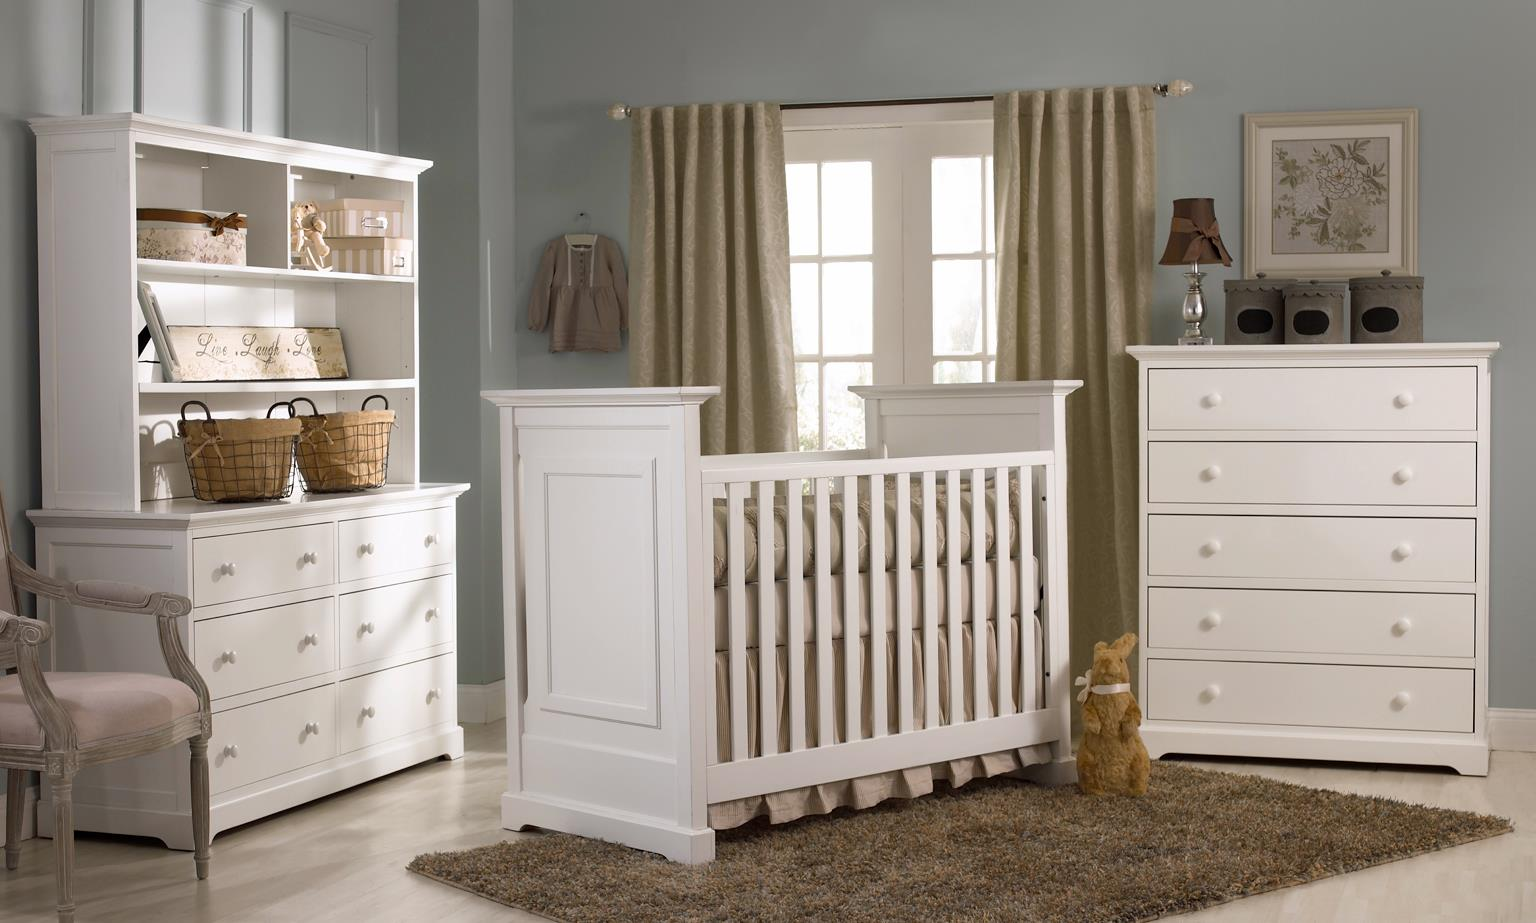 white munire crib on cream ceramics floor with tan carpet matched with blue wall with white window and tan curtain plus white dresser for nursery decor ideas